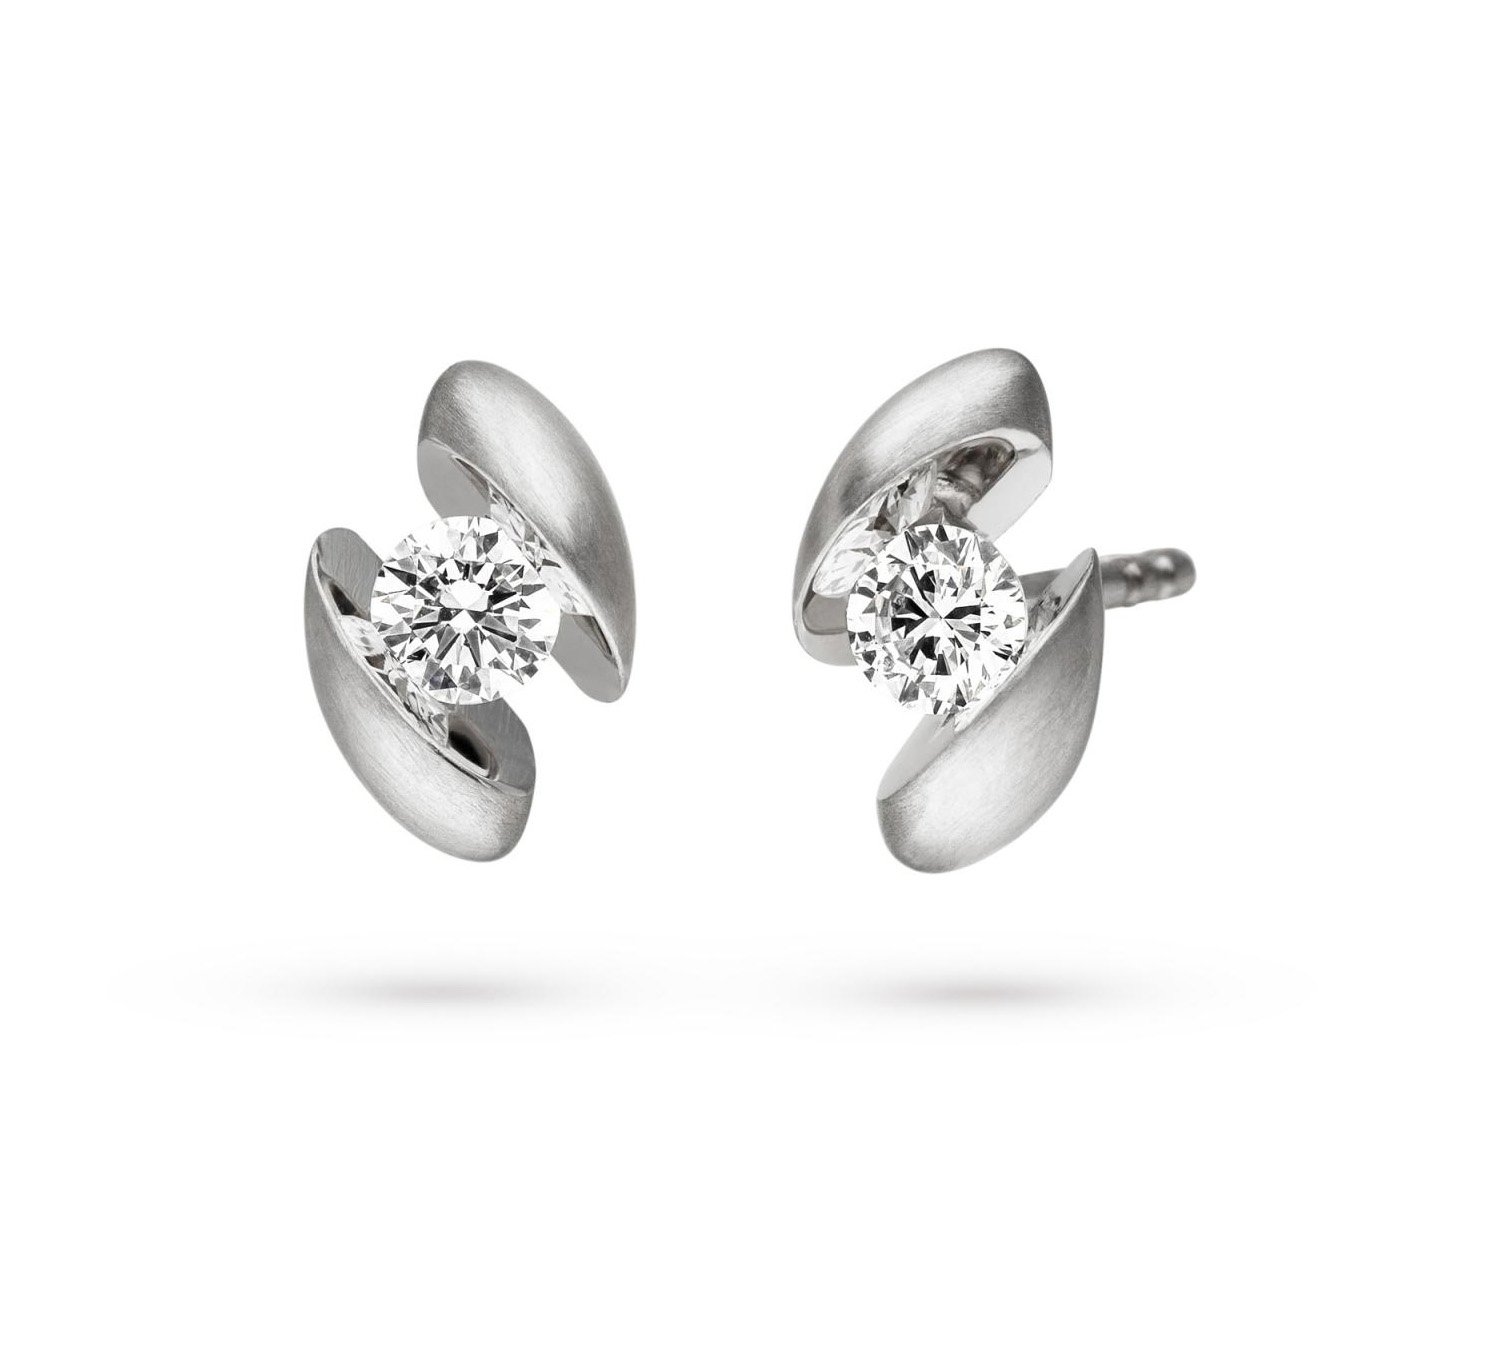 18 carat golden earstuds with a diamond between two reflective surfaces.